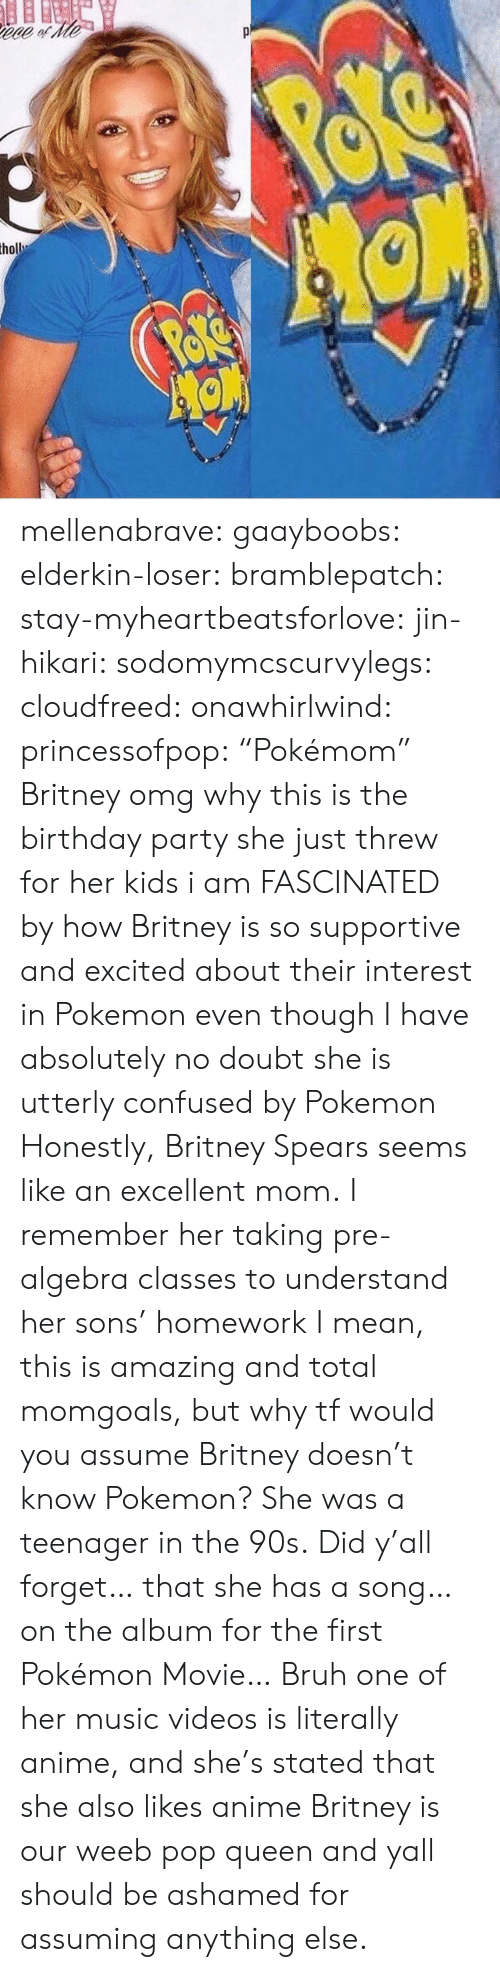 "britney spears: mellenabrave:  gaayboobs:  elderkin-loser:   bramblepatch:   stay-myheartbeatsforlove:  jin-hikari:  sodomymcscurvylegs:  cloudfreed:  onawhirlwind:  princessofpop:  ""Pokémom""  Britney omg why     this is the birthday party she just threw for her kids i am FASCINATED by how Britney is so supportive and excited about their interest in Pokemon even though I have absolutely no doubt she is utterly confused by Pokemon  Honestly, Britney Spears seems like an excellent mom.   I remember her taking pre-algebra classes to understand her sons' homework   I mean, this is amazing and total momgoals, but why tf would you assume Britney doesn't know Pokemon? She was a teenager in the 90s.   Did y'all forget… that she has a song… on the album for the first Pokémon Movie…   Bruh one of her music videos is literally anime, and she's stated that she also likes anime   Britney is our weeb pop queen and yall should be ashamed for assuming anything else."